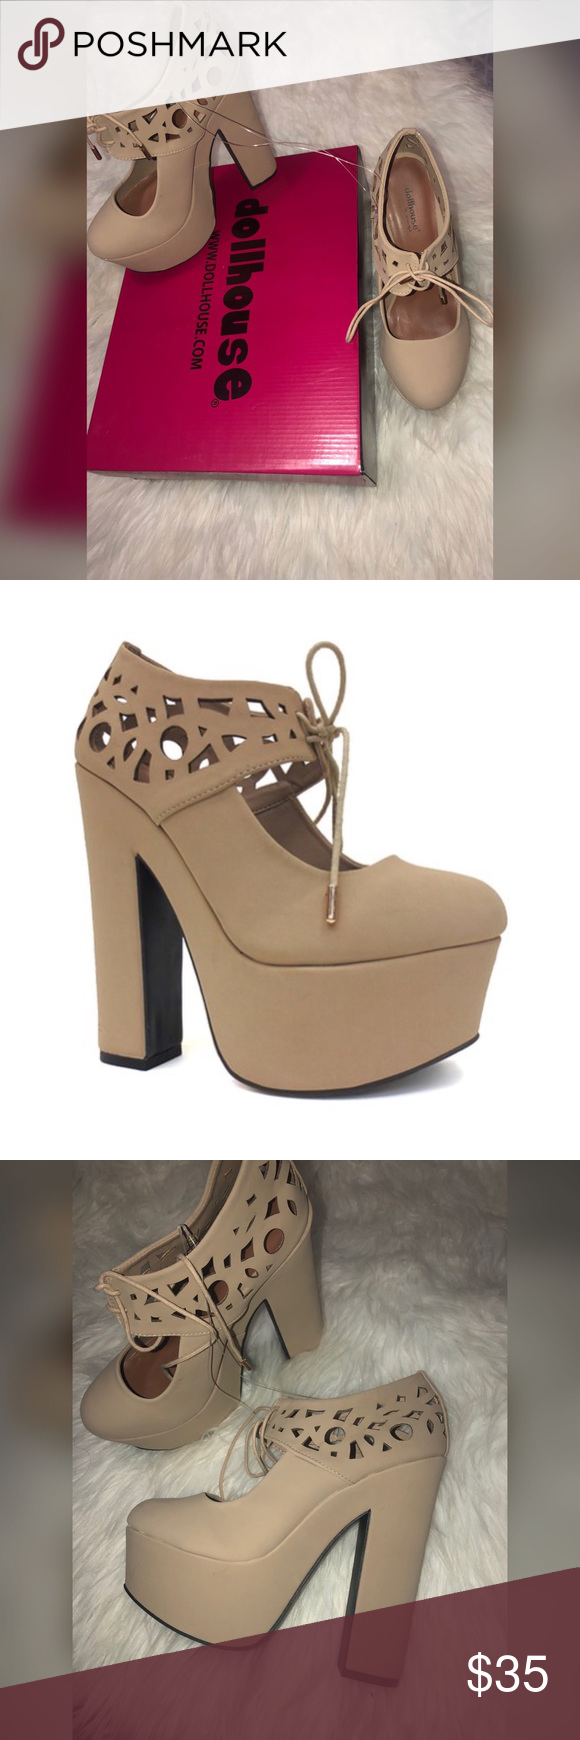 DOLLHOUSE Nude Platform CutOut Heels Perfect condition NWT, size 7 & 8  flaws are pictured